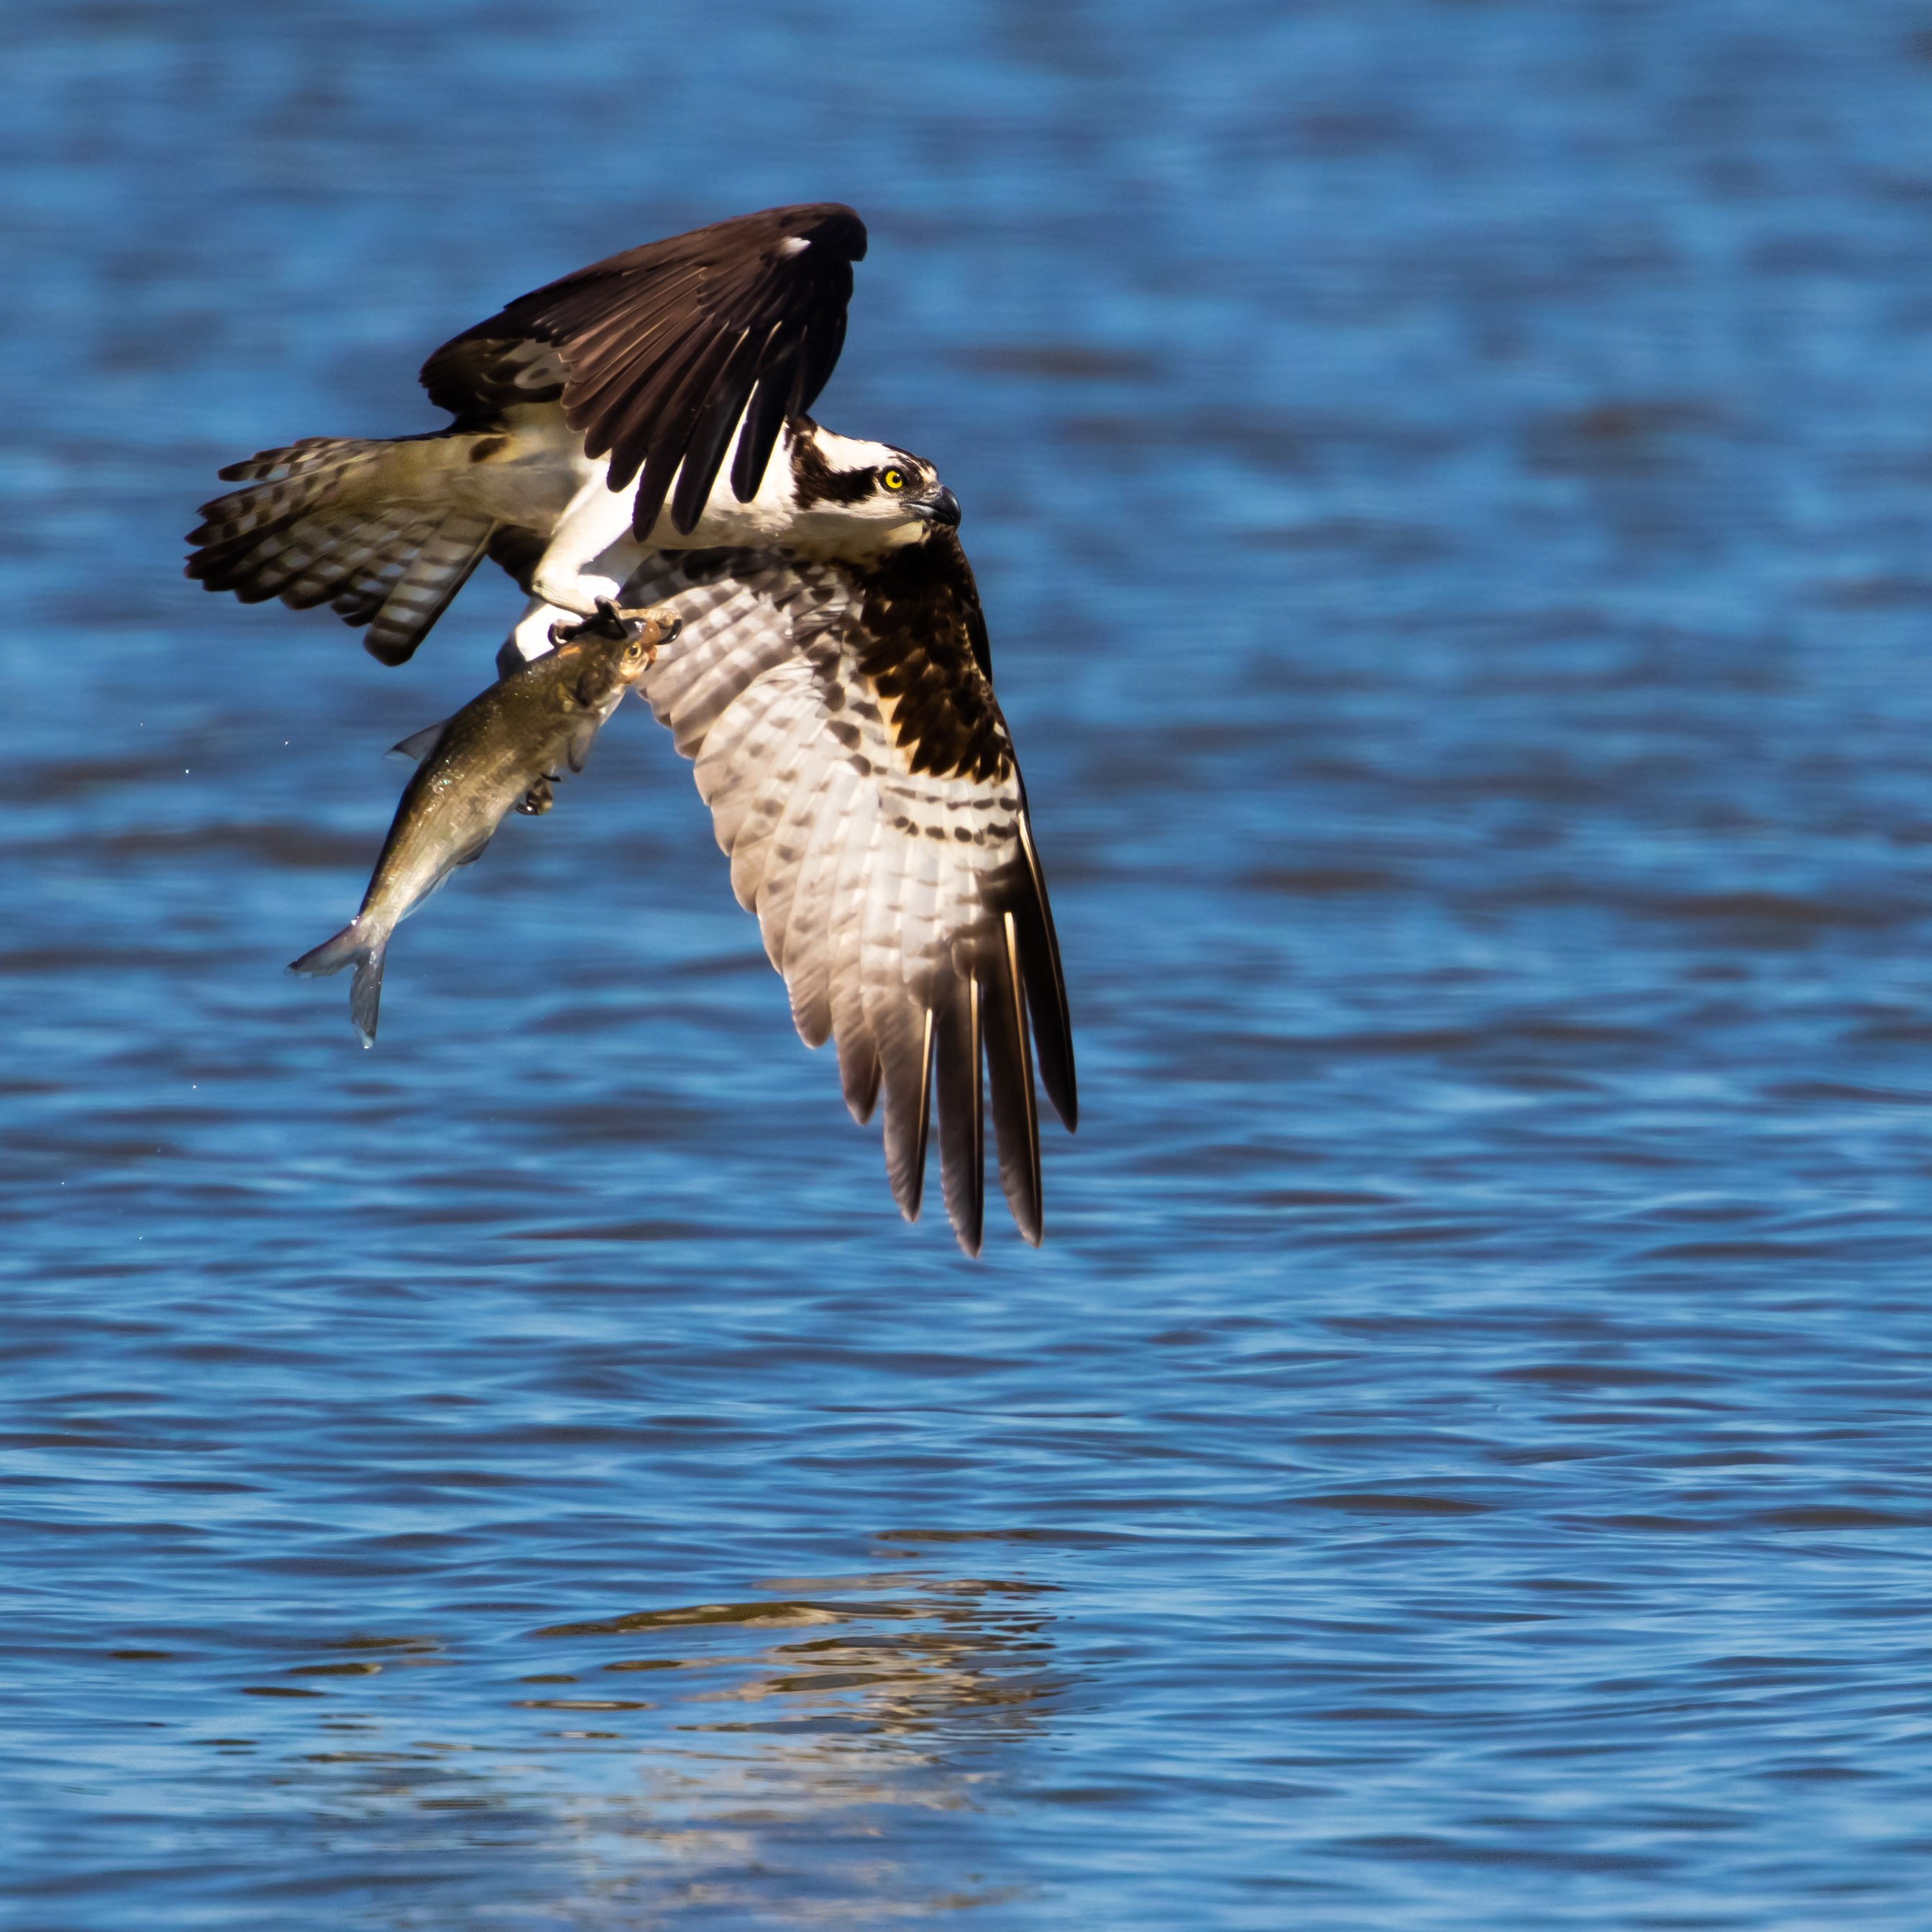 osprey fishing at Virginia